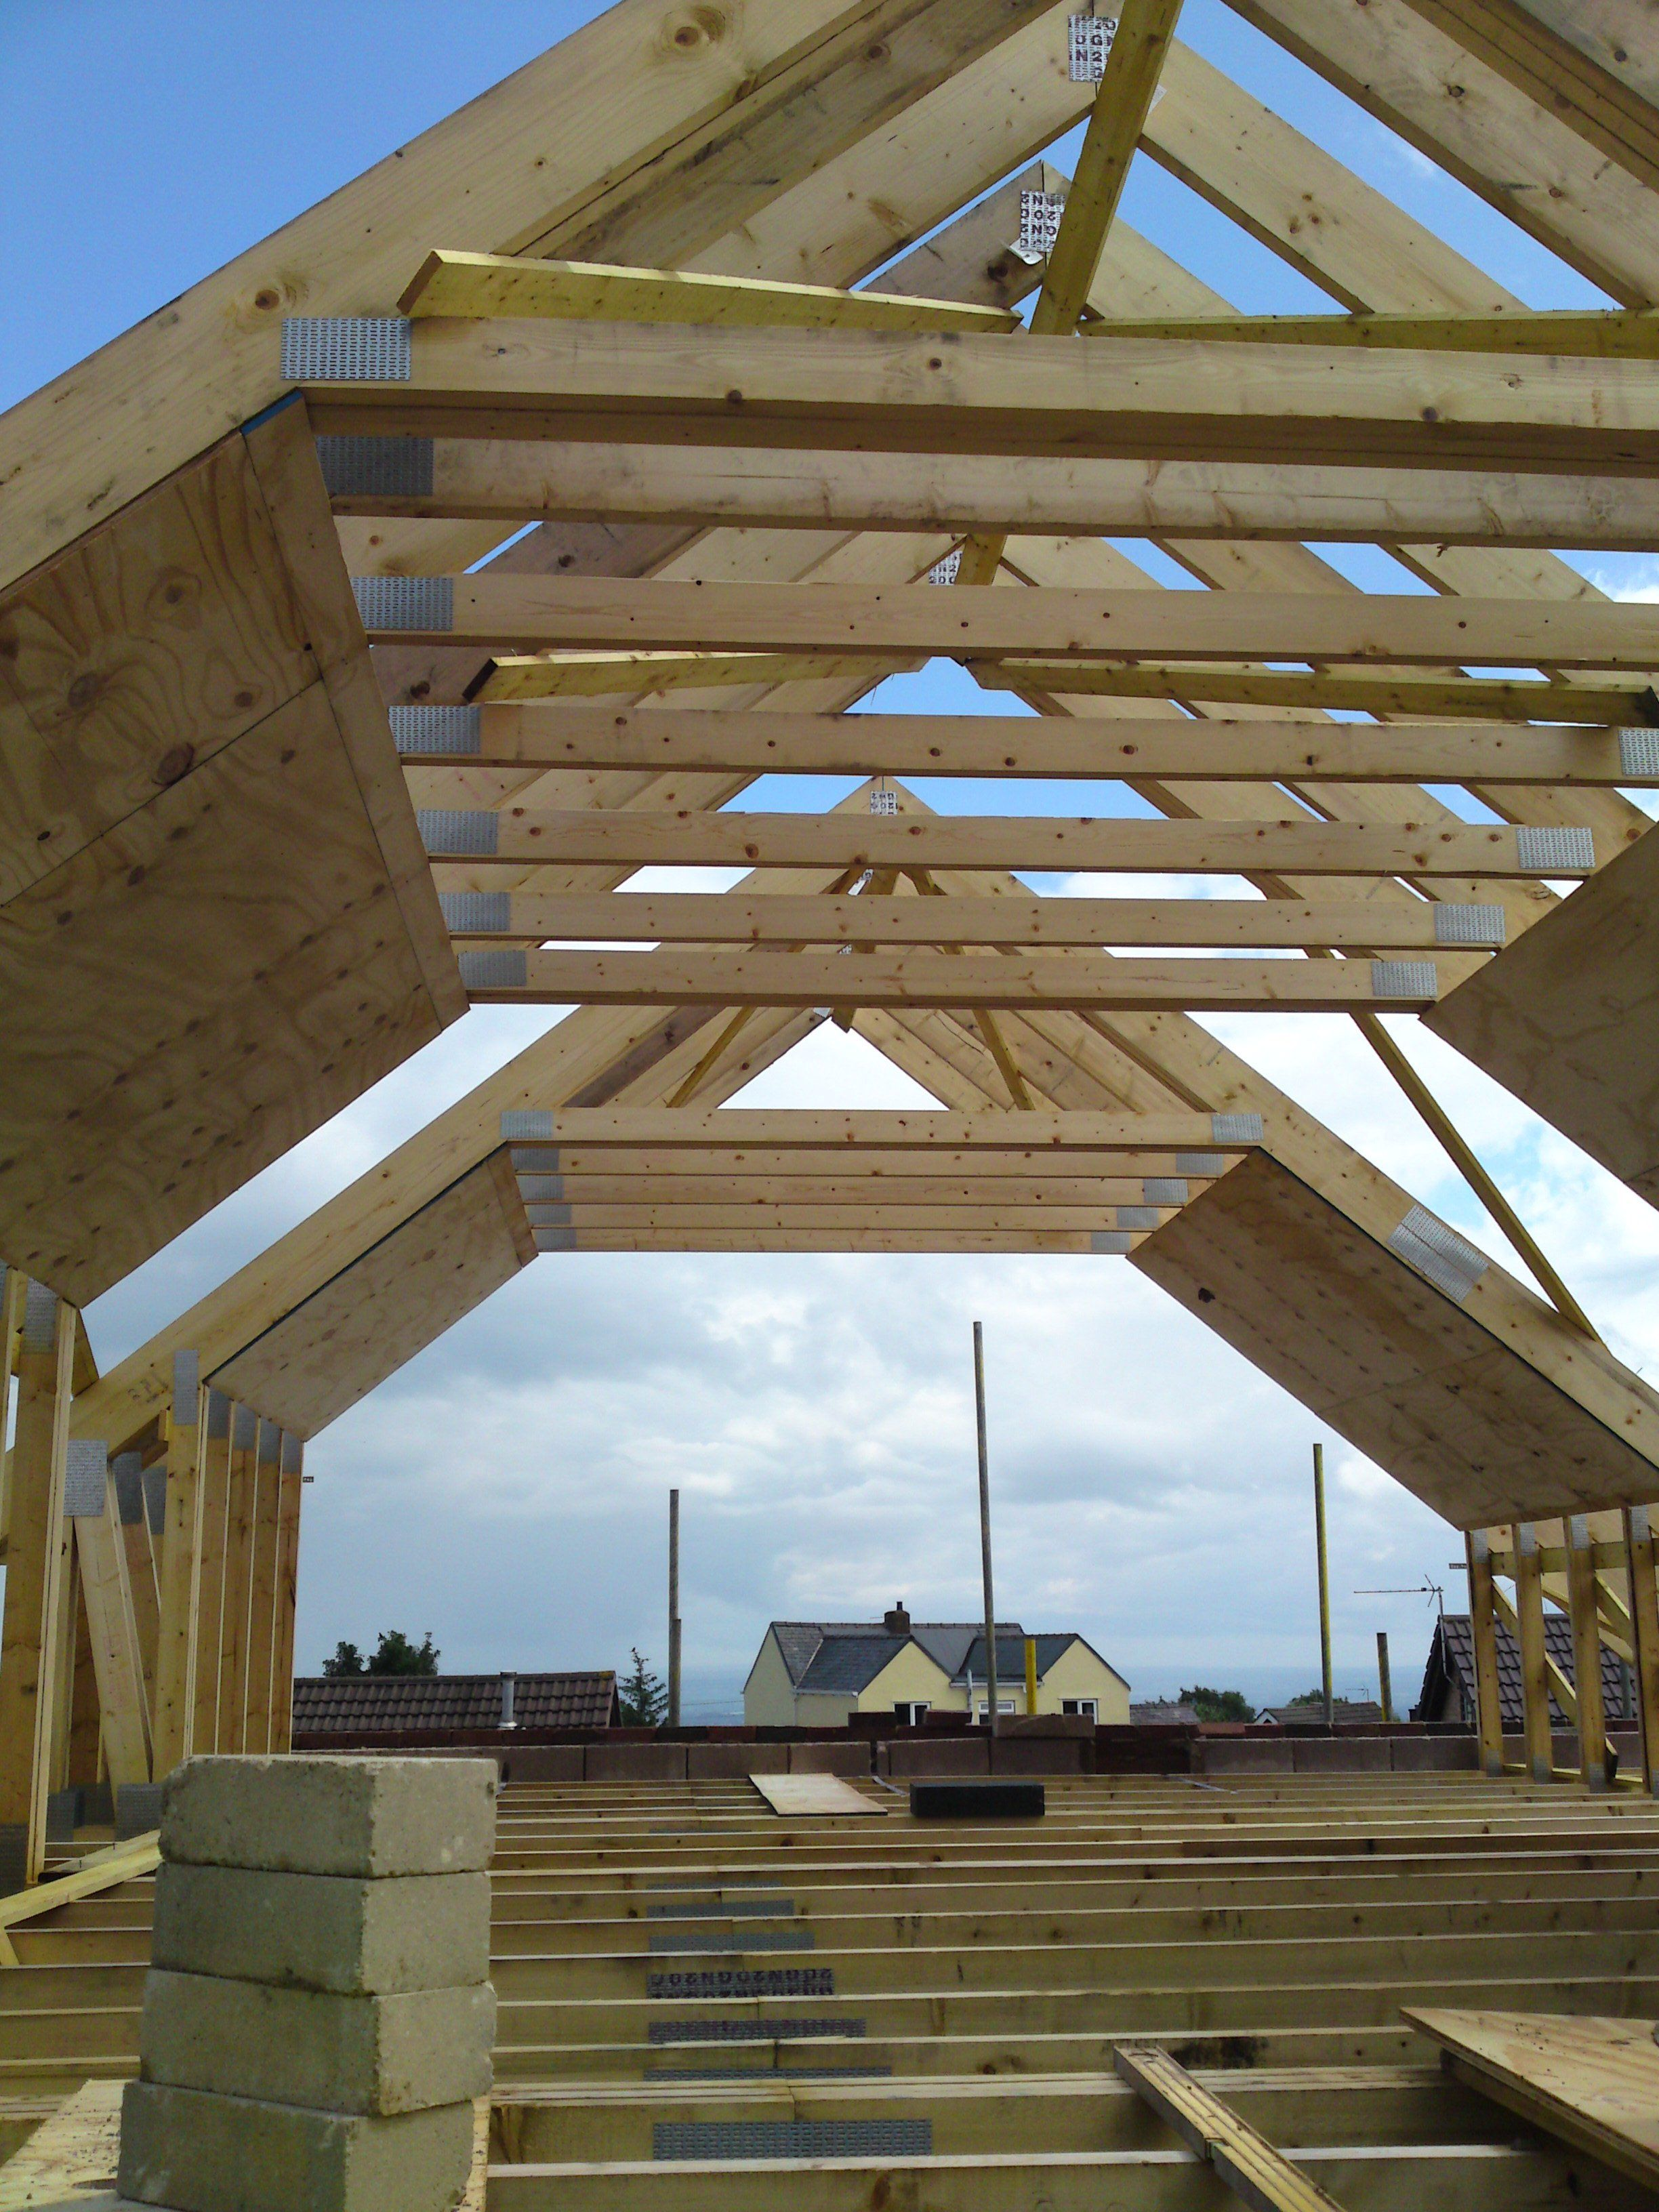 Room In Attic Truss Design: Roof Truss Design, Roof Trusses, Roof Construction